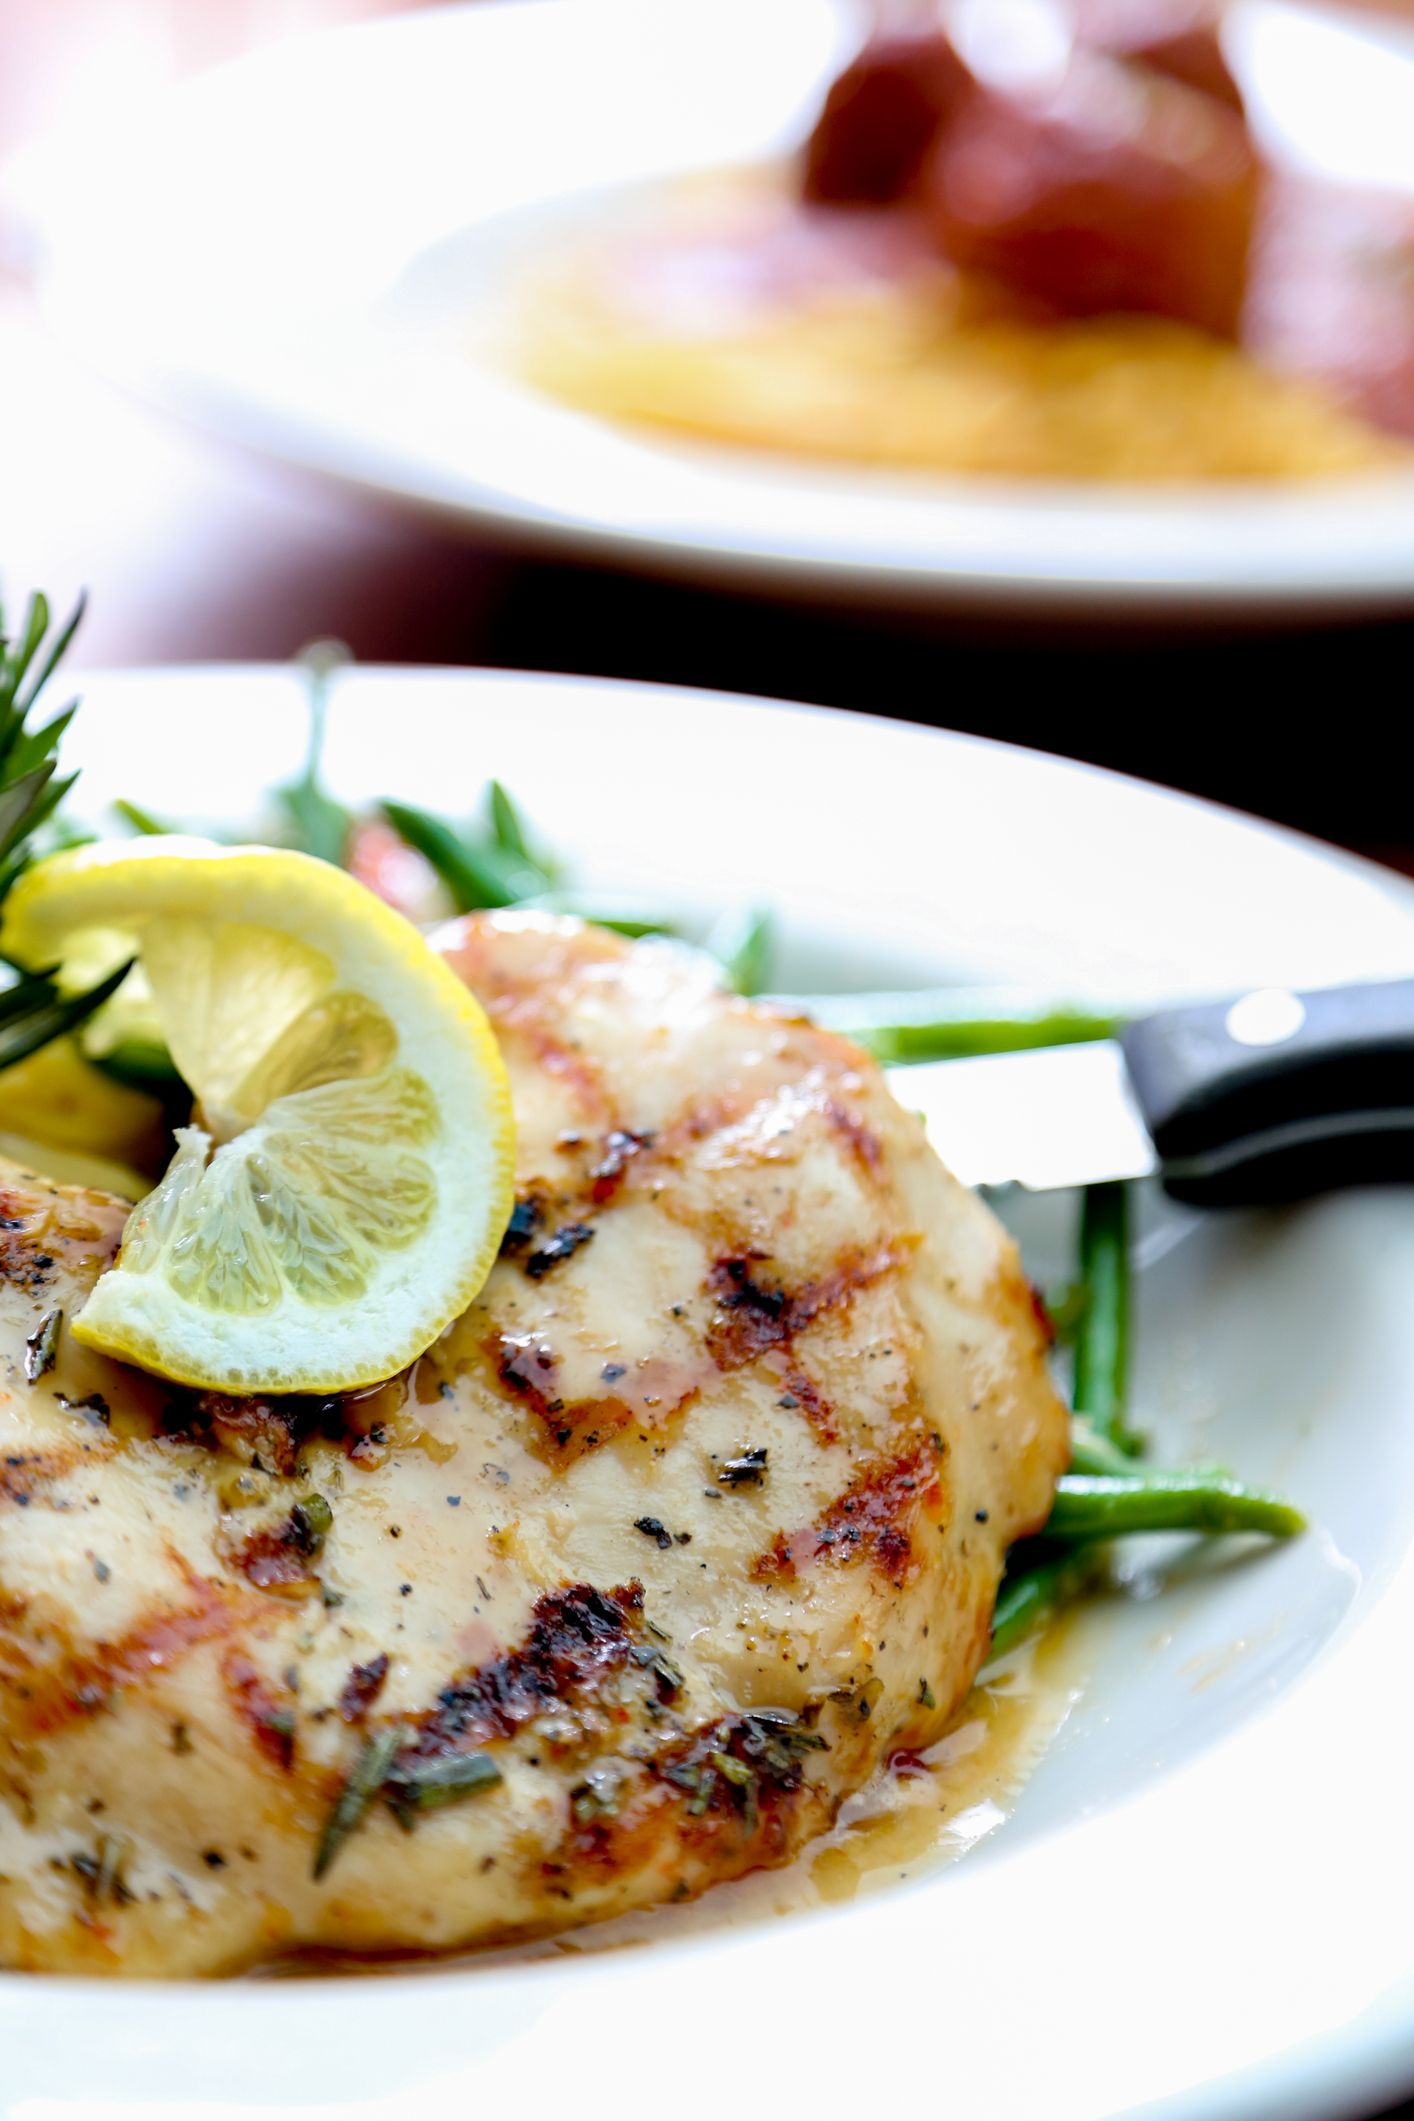 How To George Foreman Grill The Best Lemon Garlic Chicken